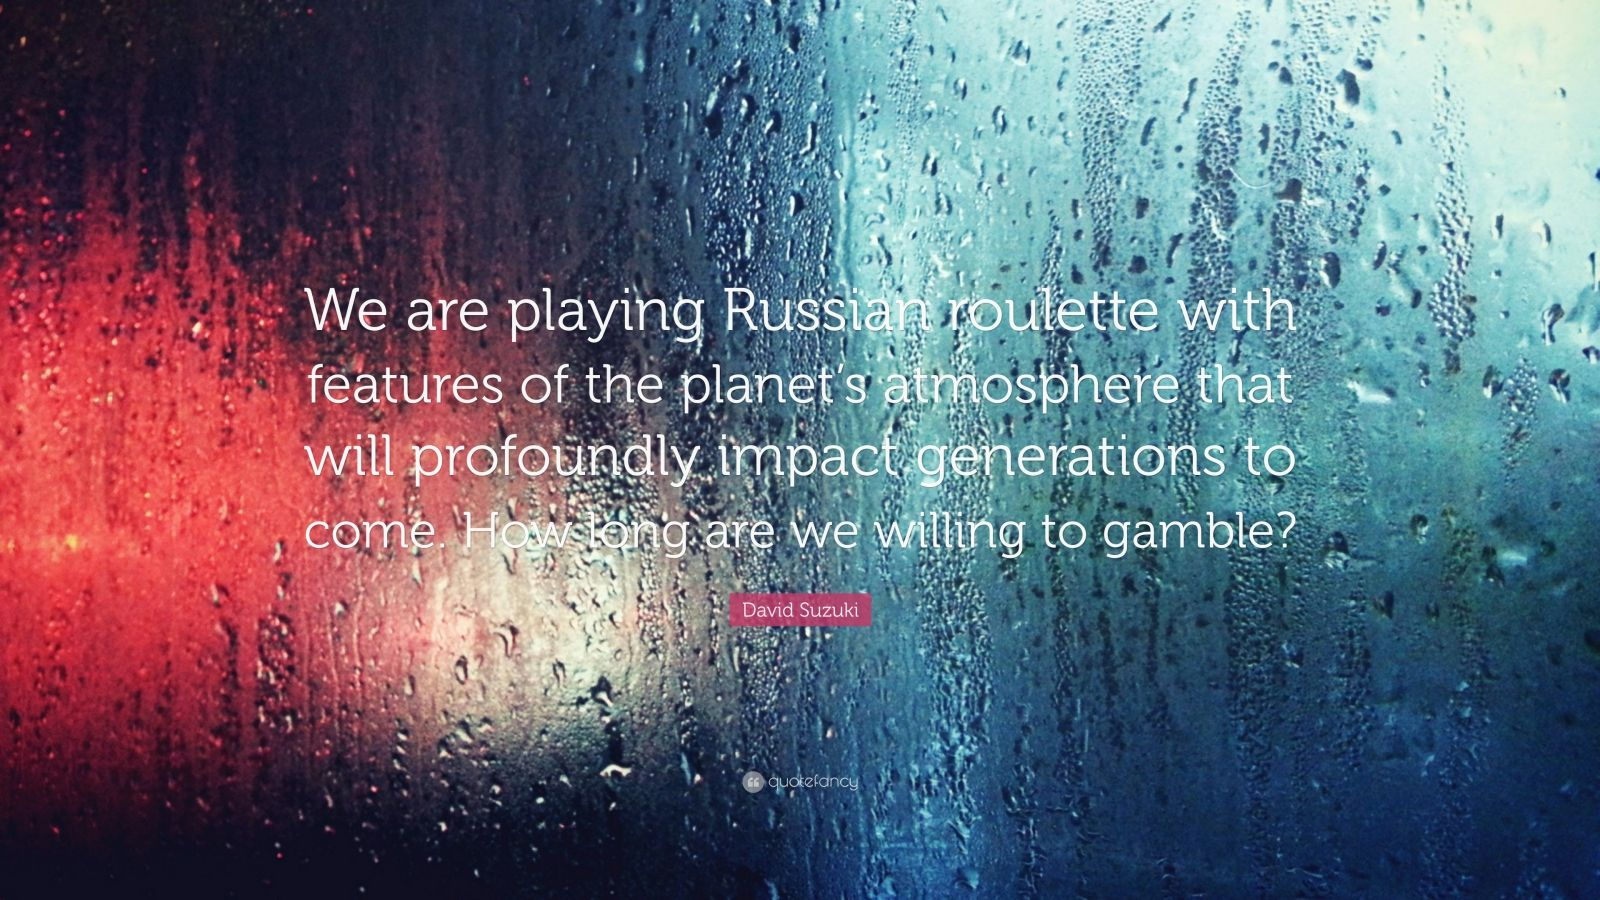 """David Suzuki Quote: """"We are playing Russian roulette with features of the planet's atmosphere that will profoundly impact generations to come. How long are we willing to gamble?"""""""